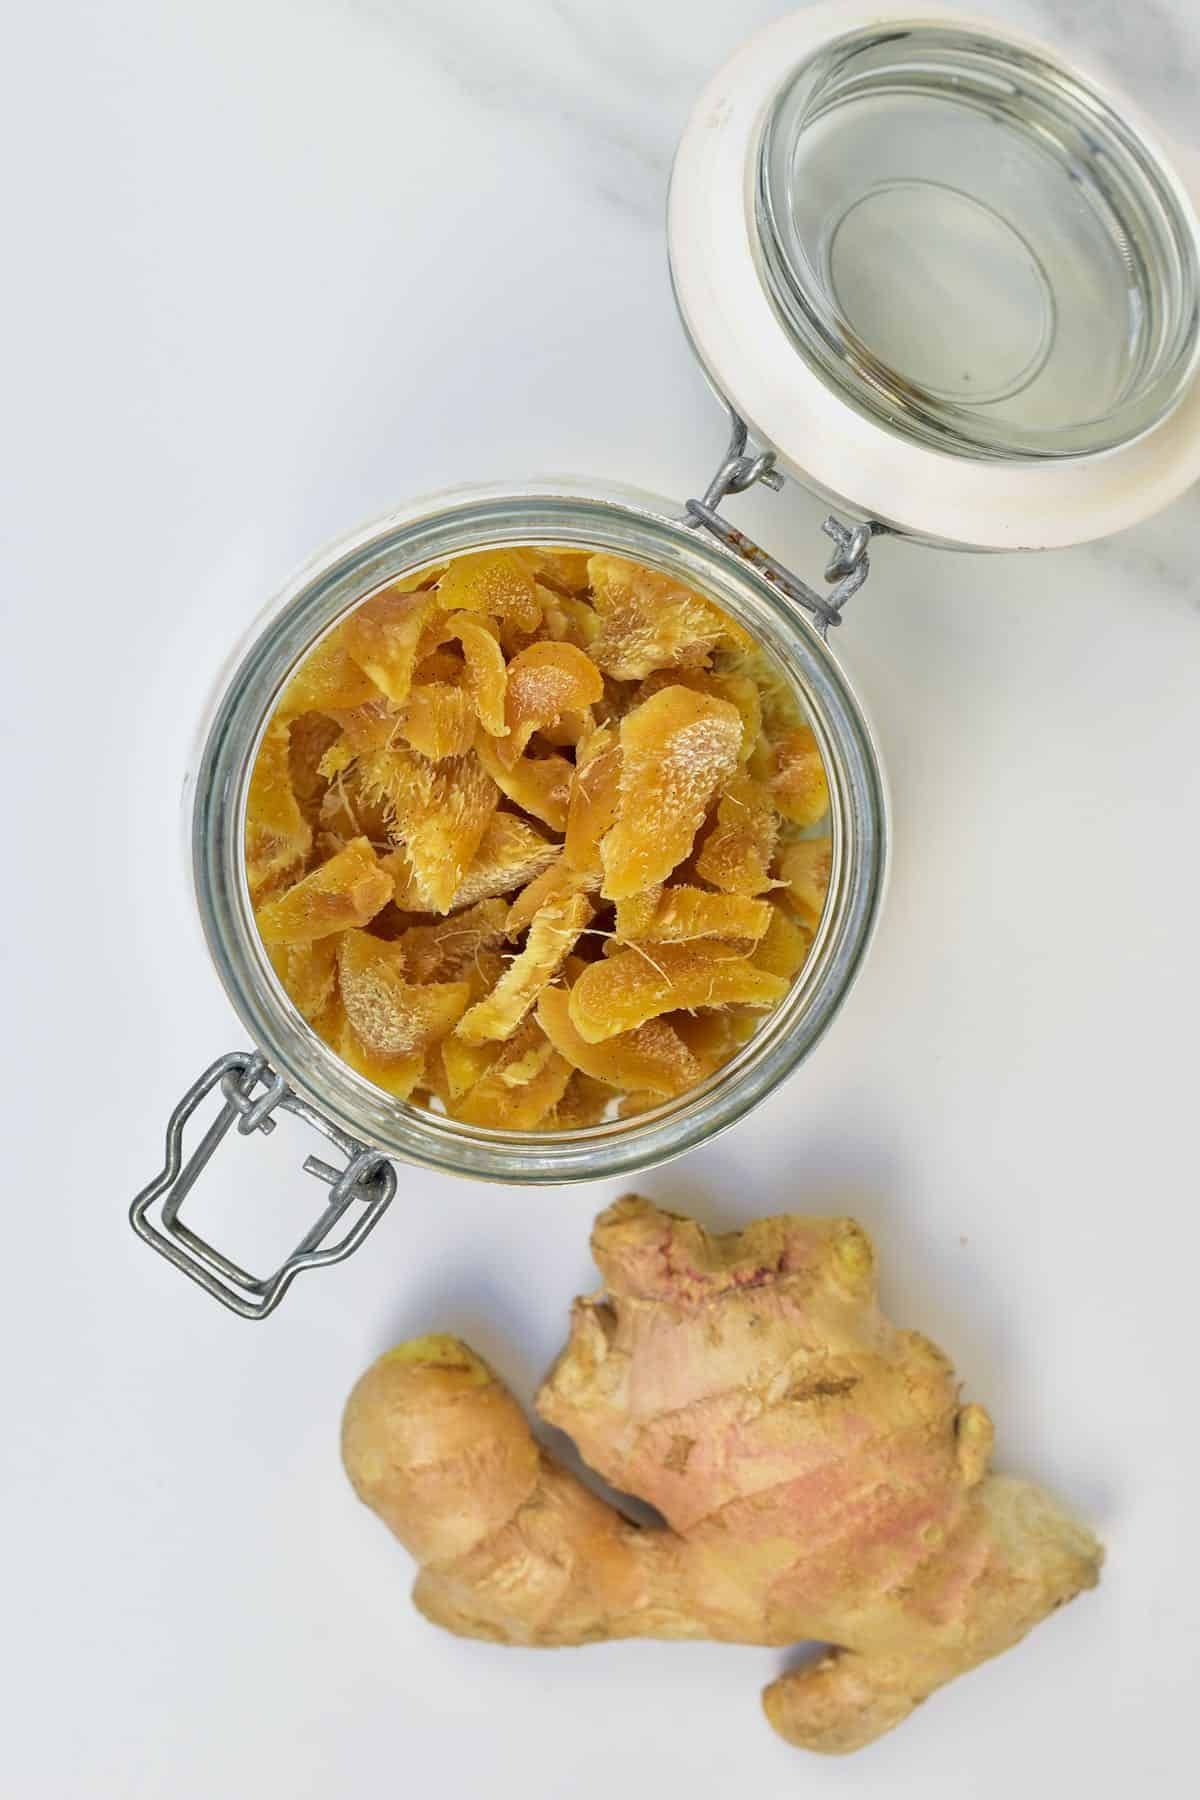 Crystallized ginger in a jar